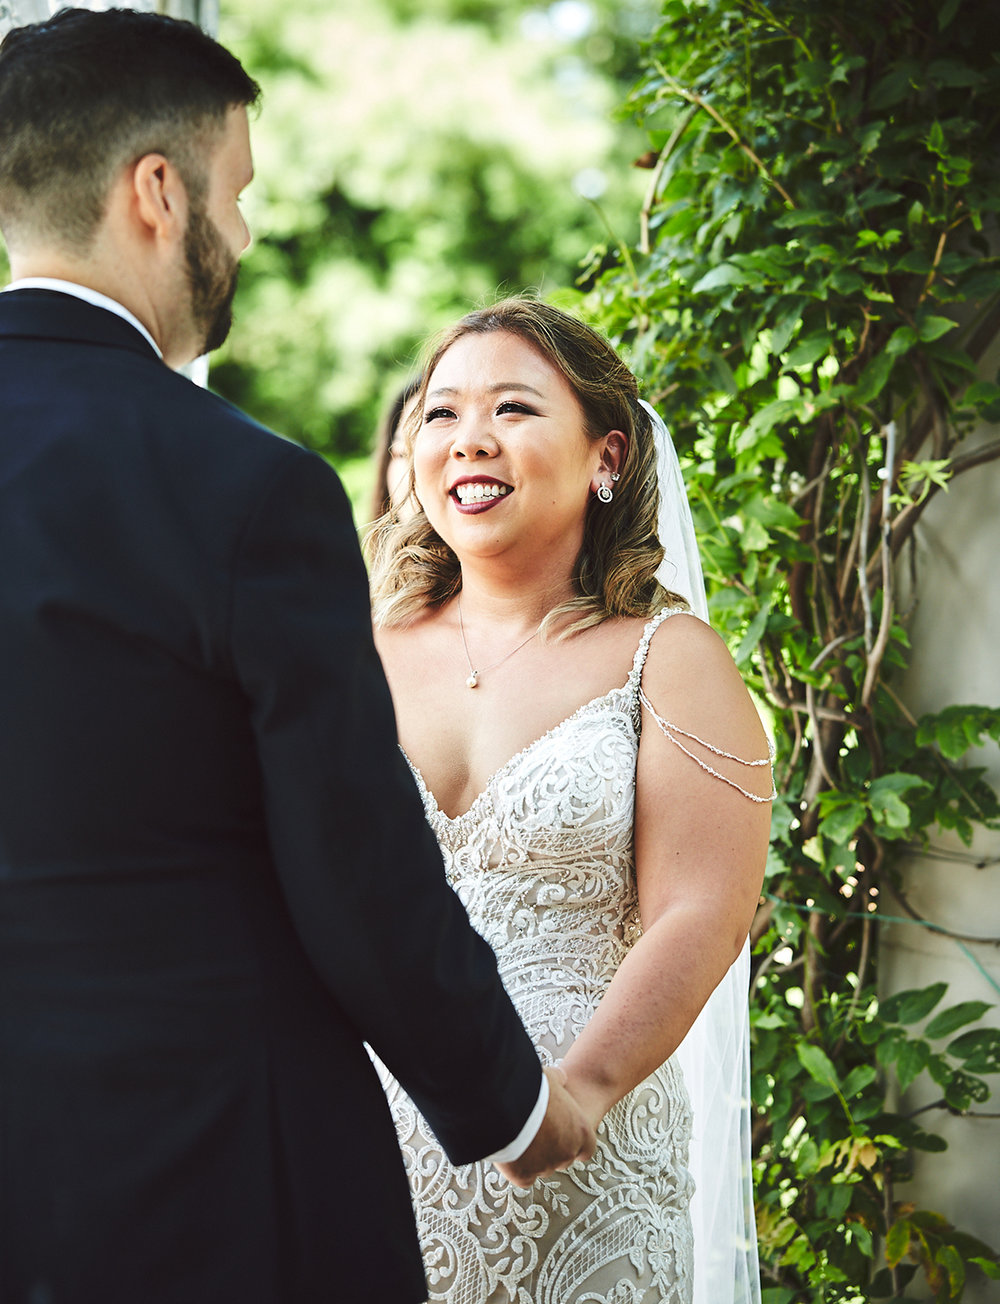 180922_CrestHollowCountryClubWeddingPhotography_LongIslandWeddingPhotographer_By_BriJohnsonWeddings_0081.jpg